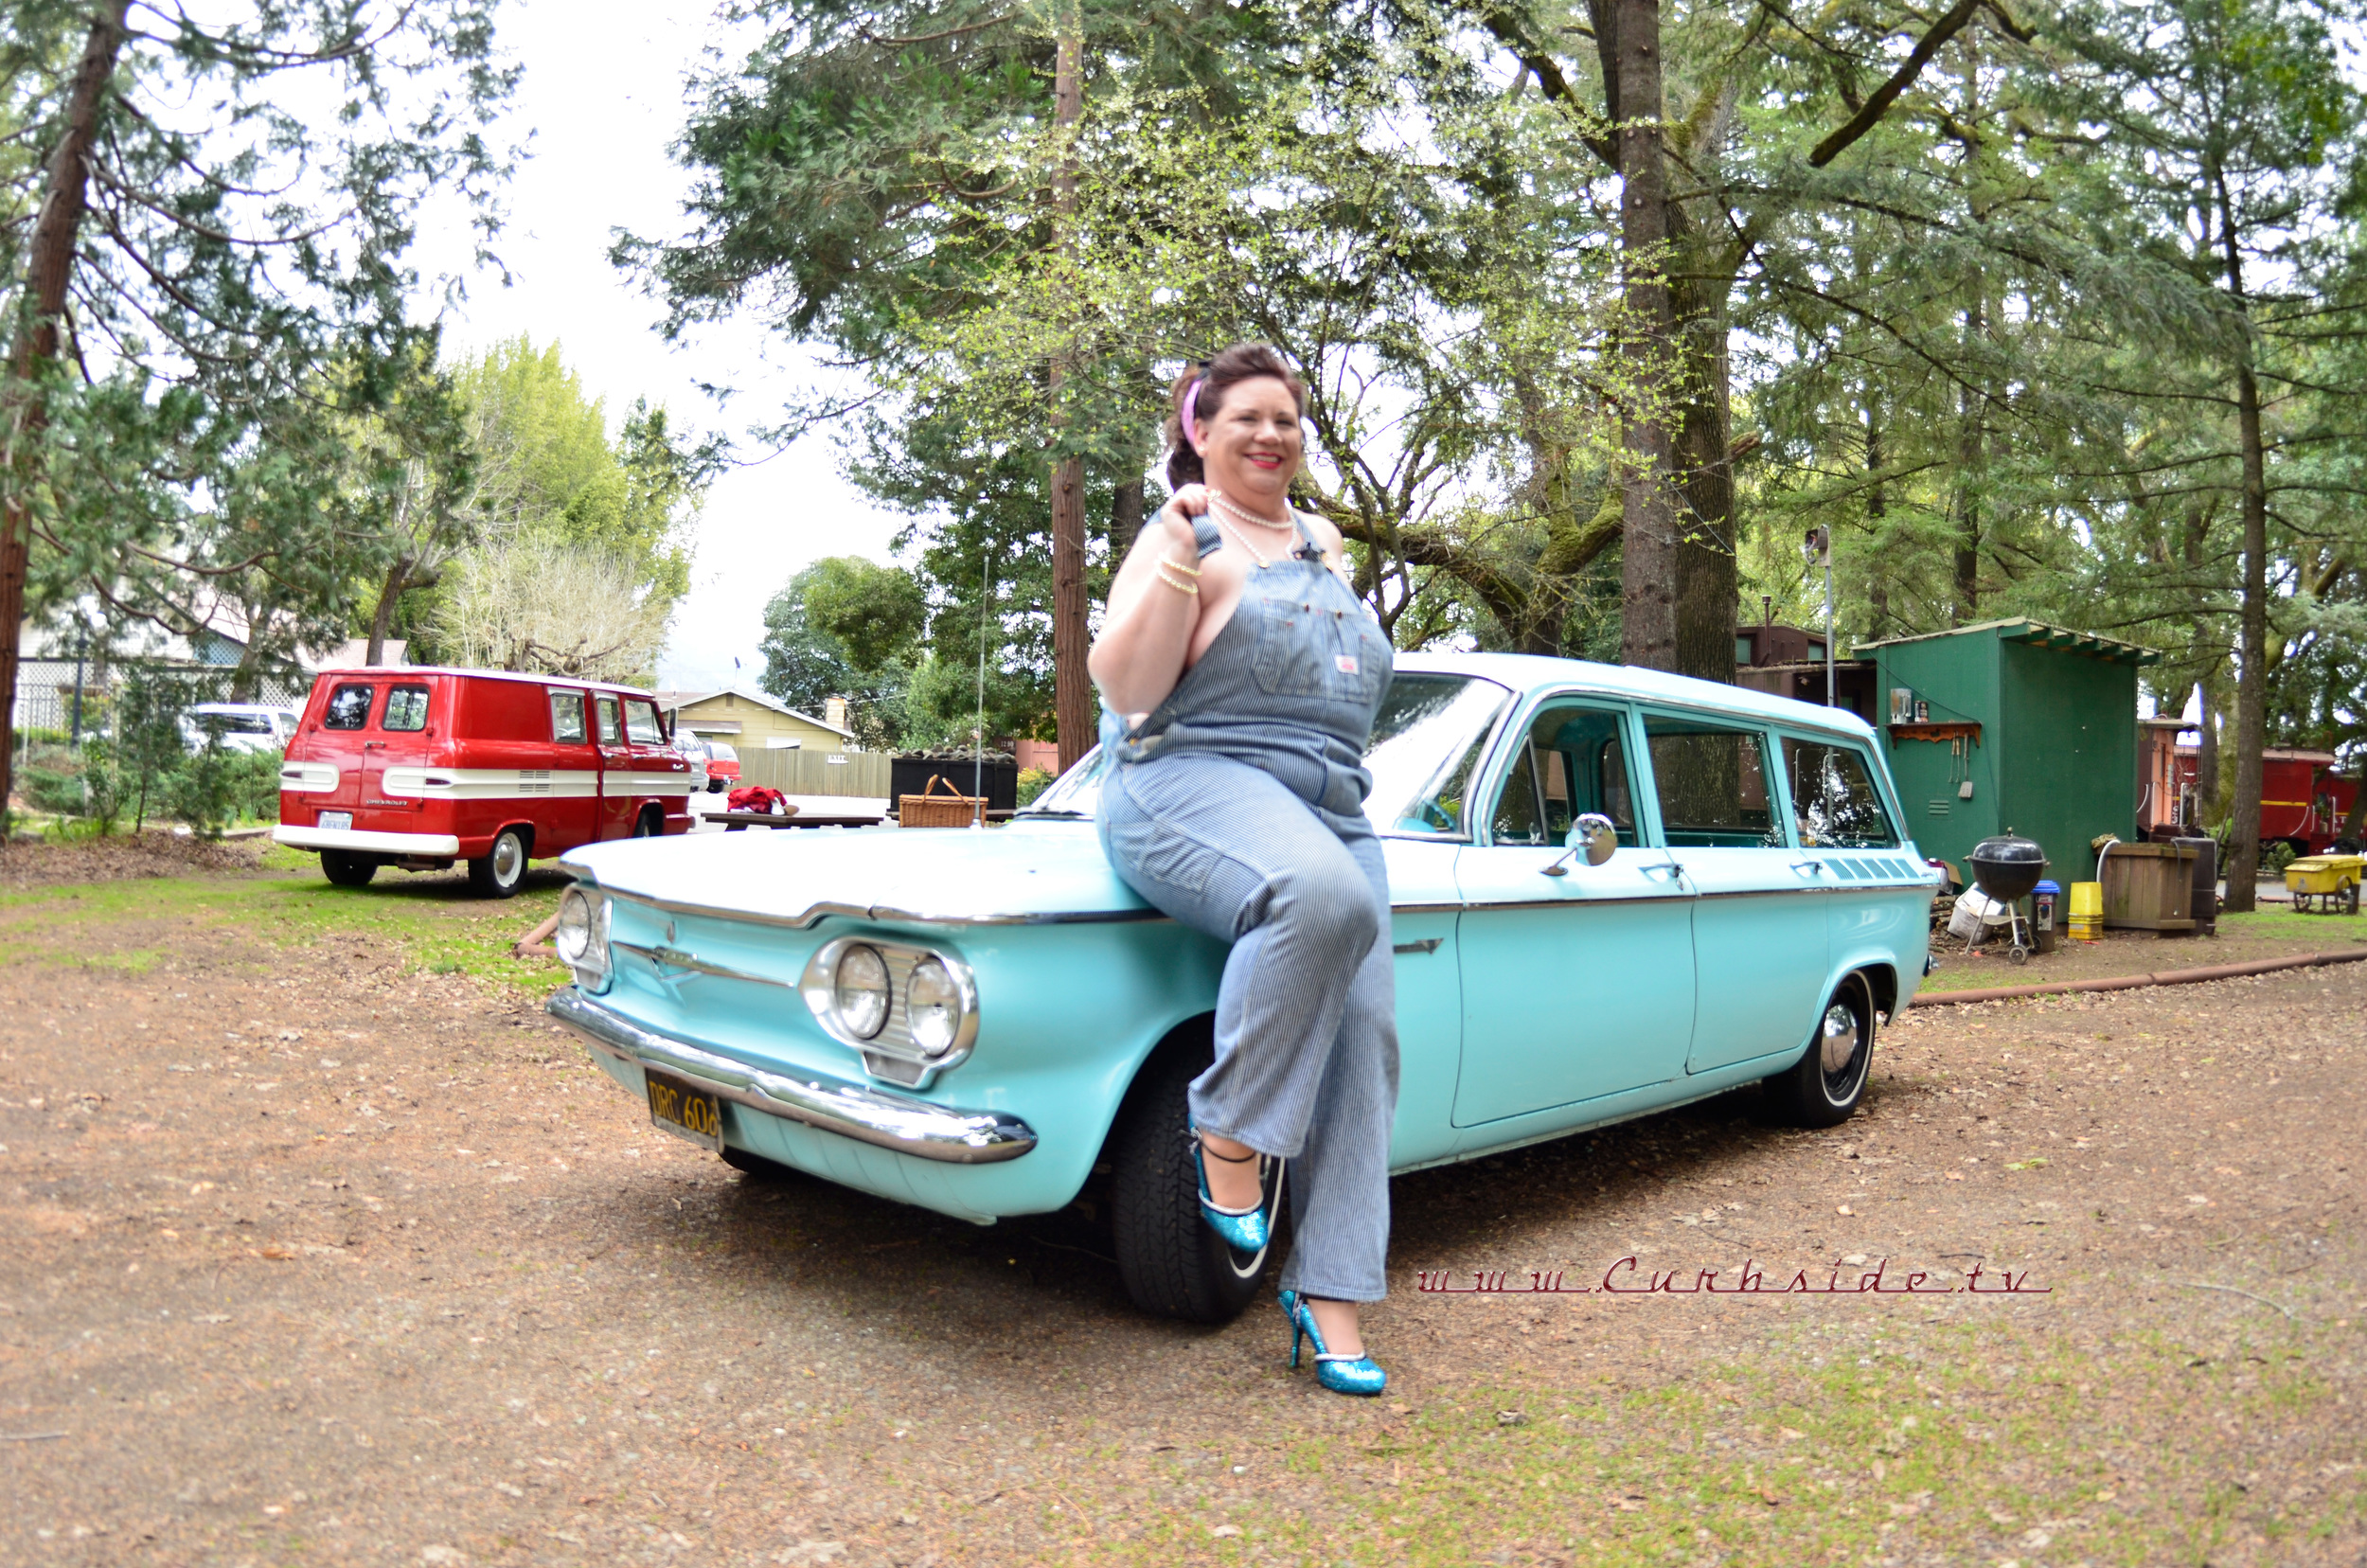 1961 Corvair Lakewood and pin-up owner